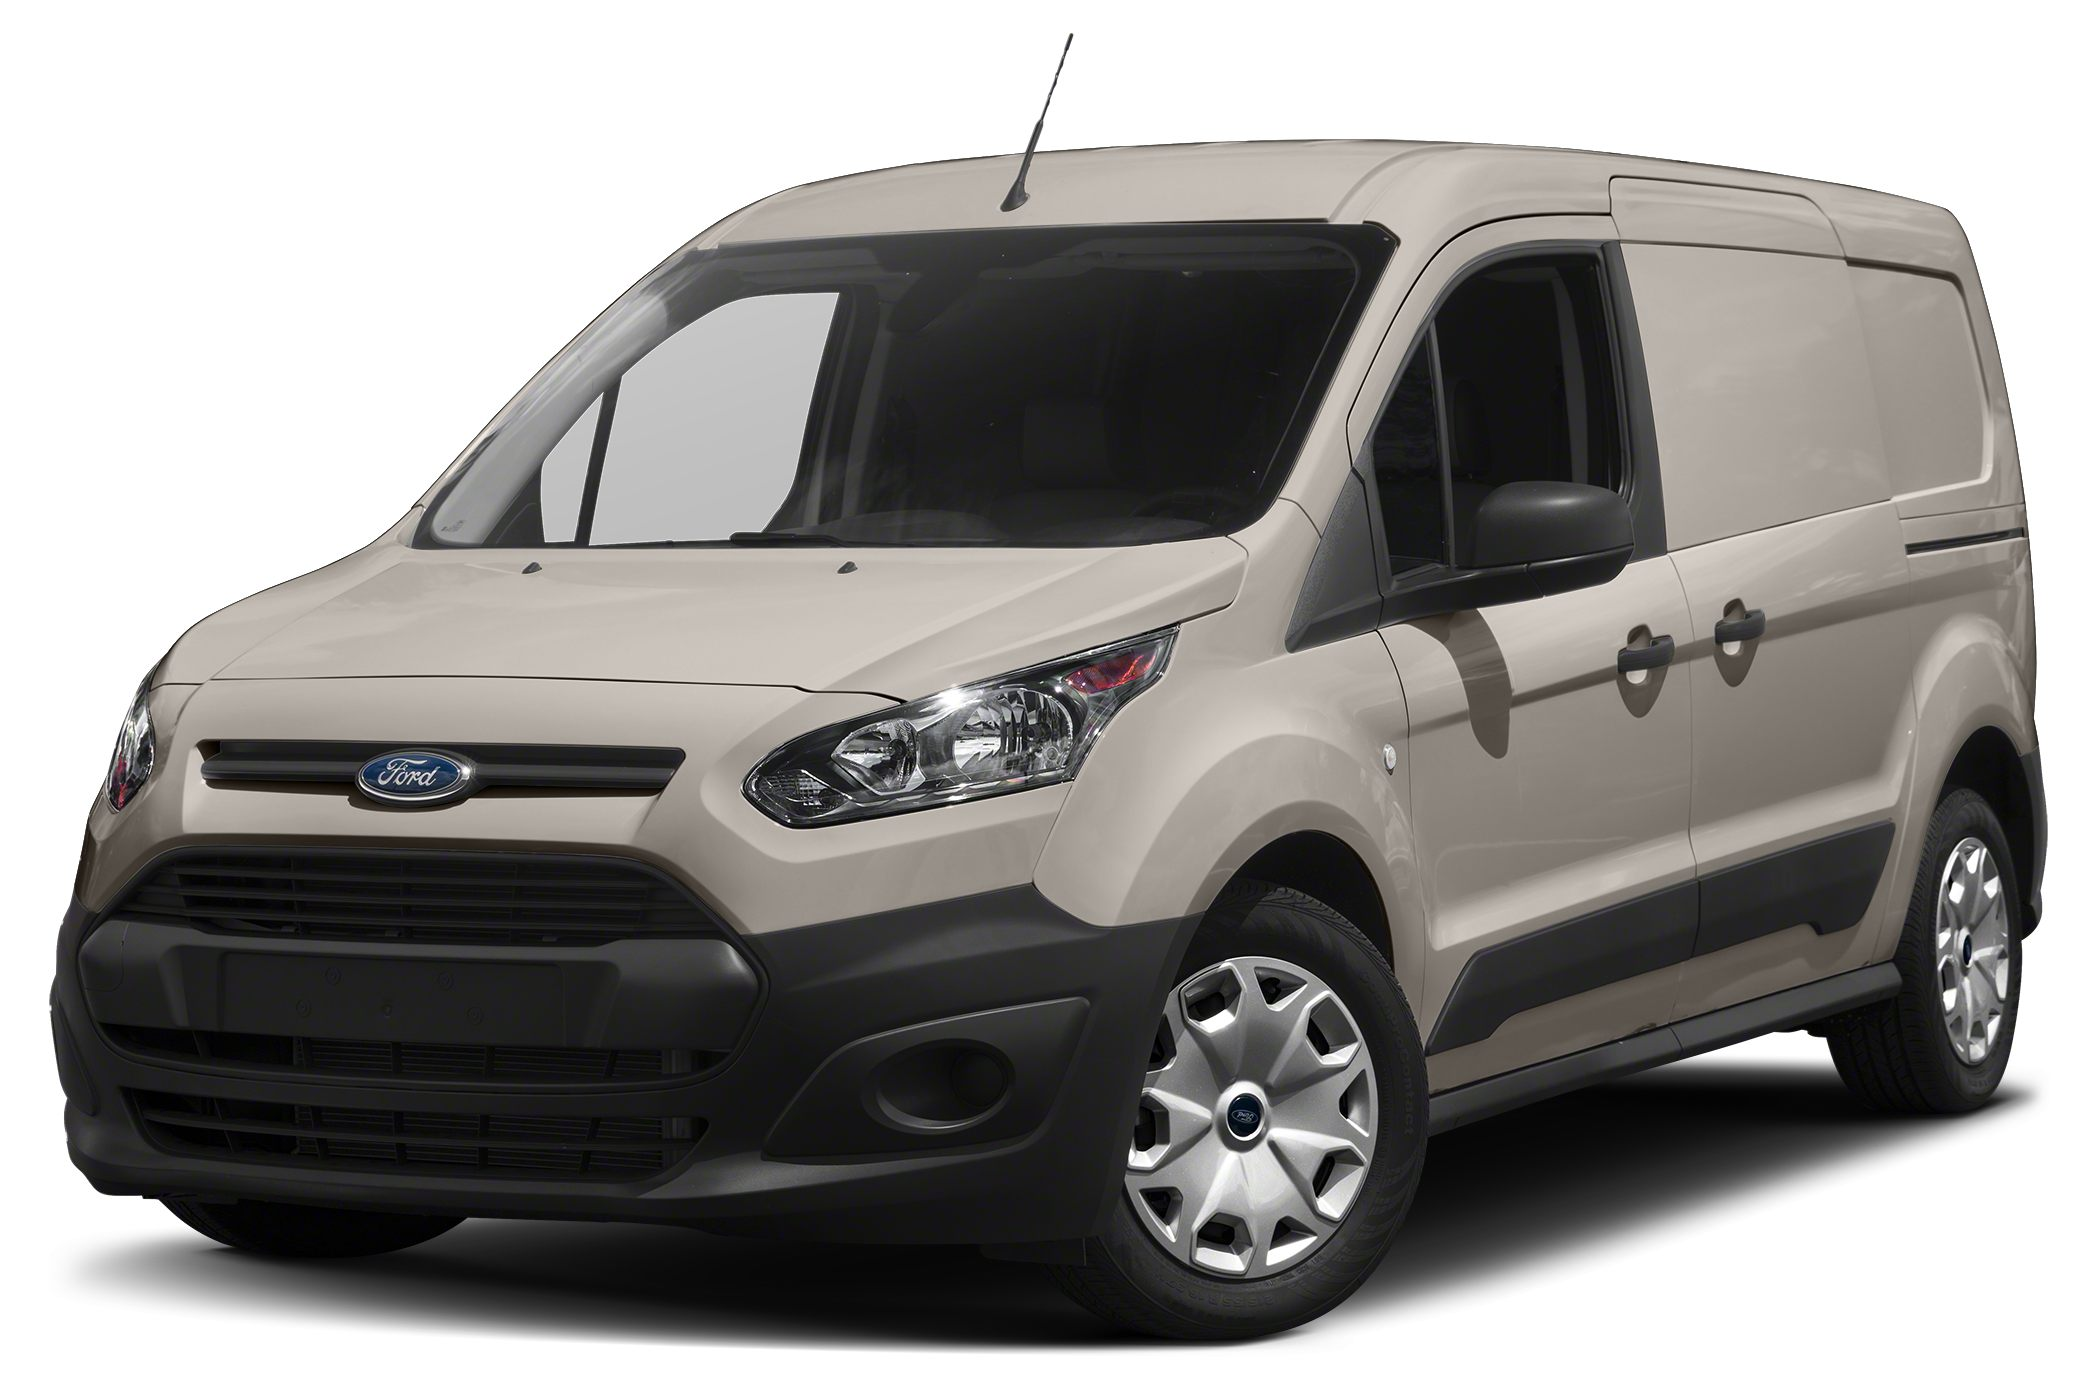 2017 Ford Transit Connect XL Silver Metallic 2017 Ford Transit Connect XL FWD 6-Speed Automatic 2